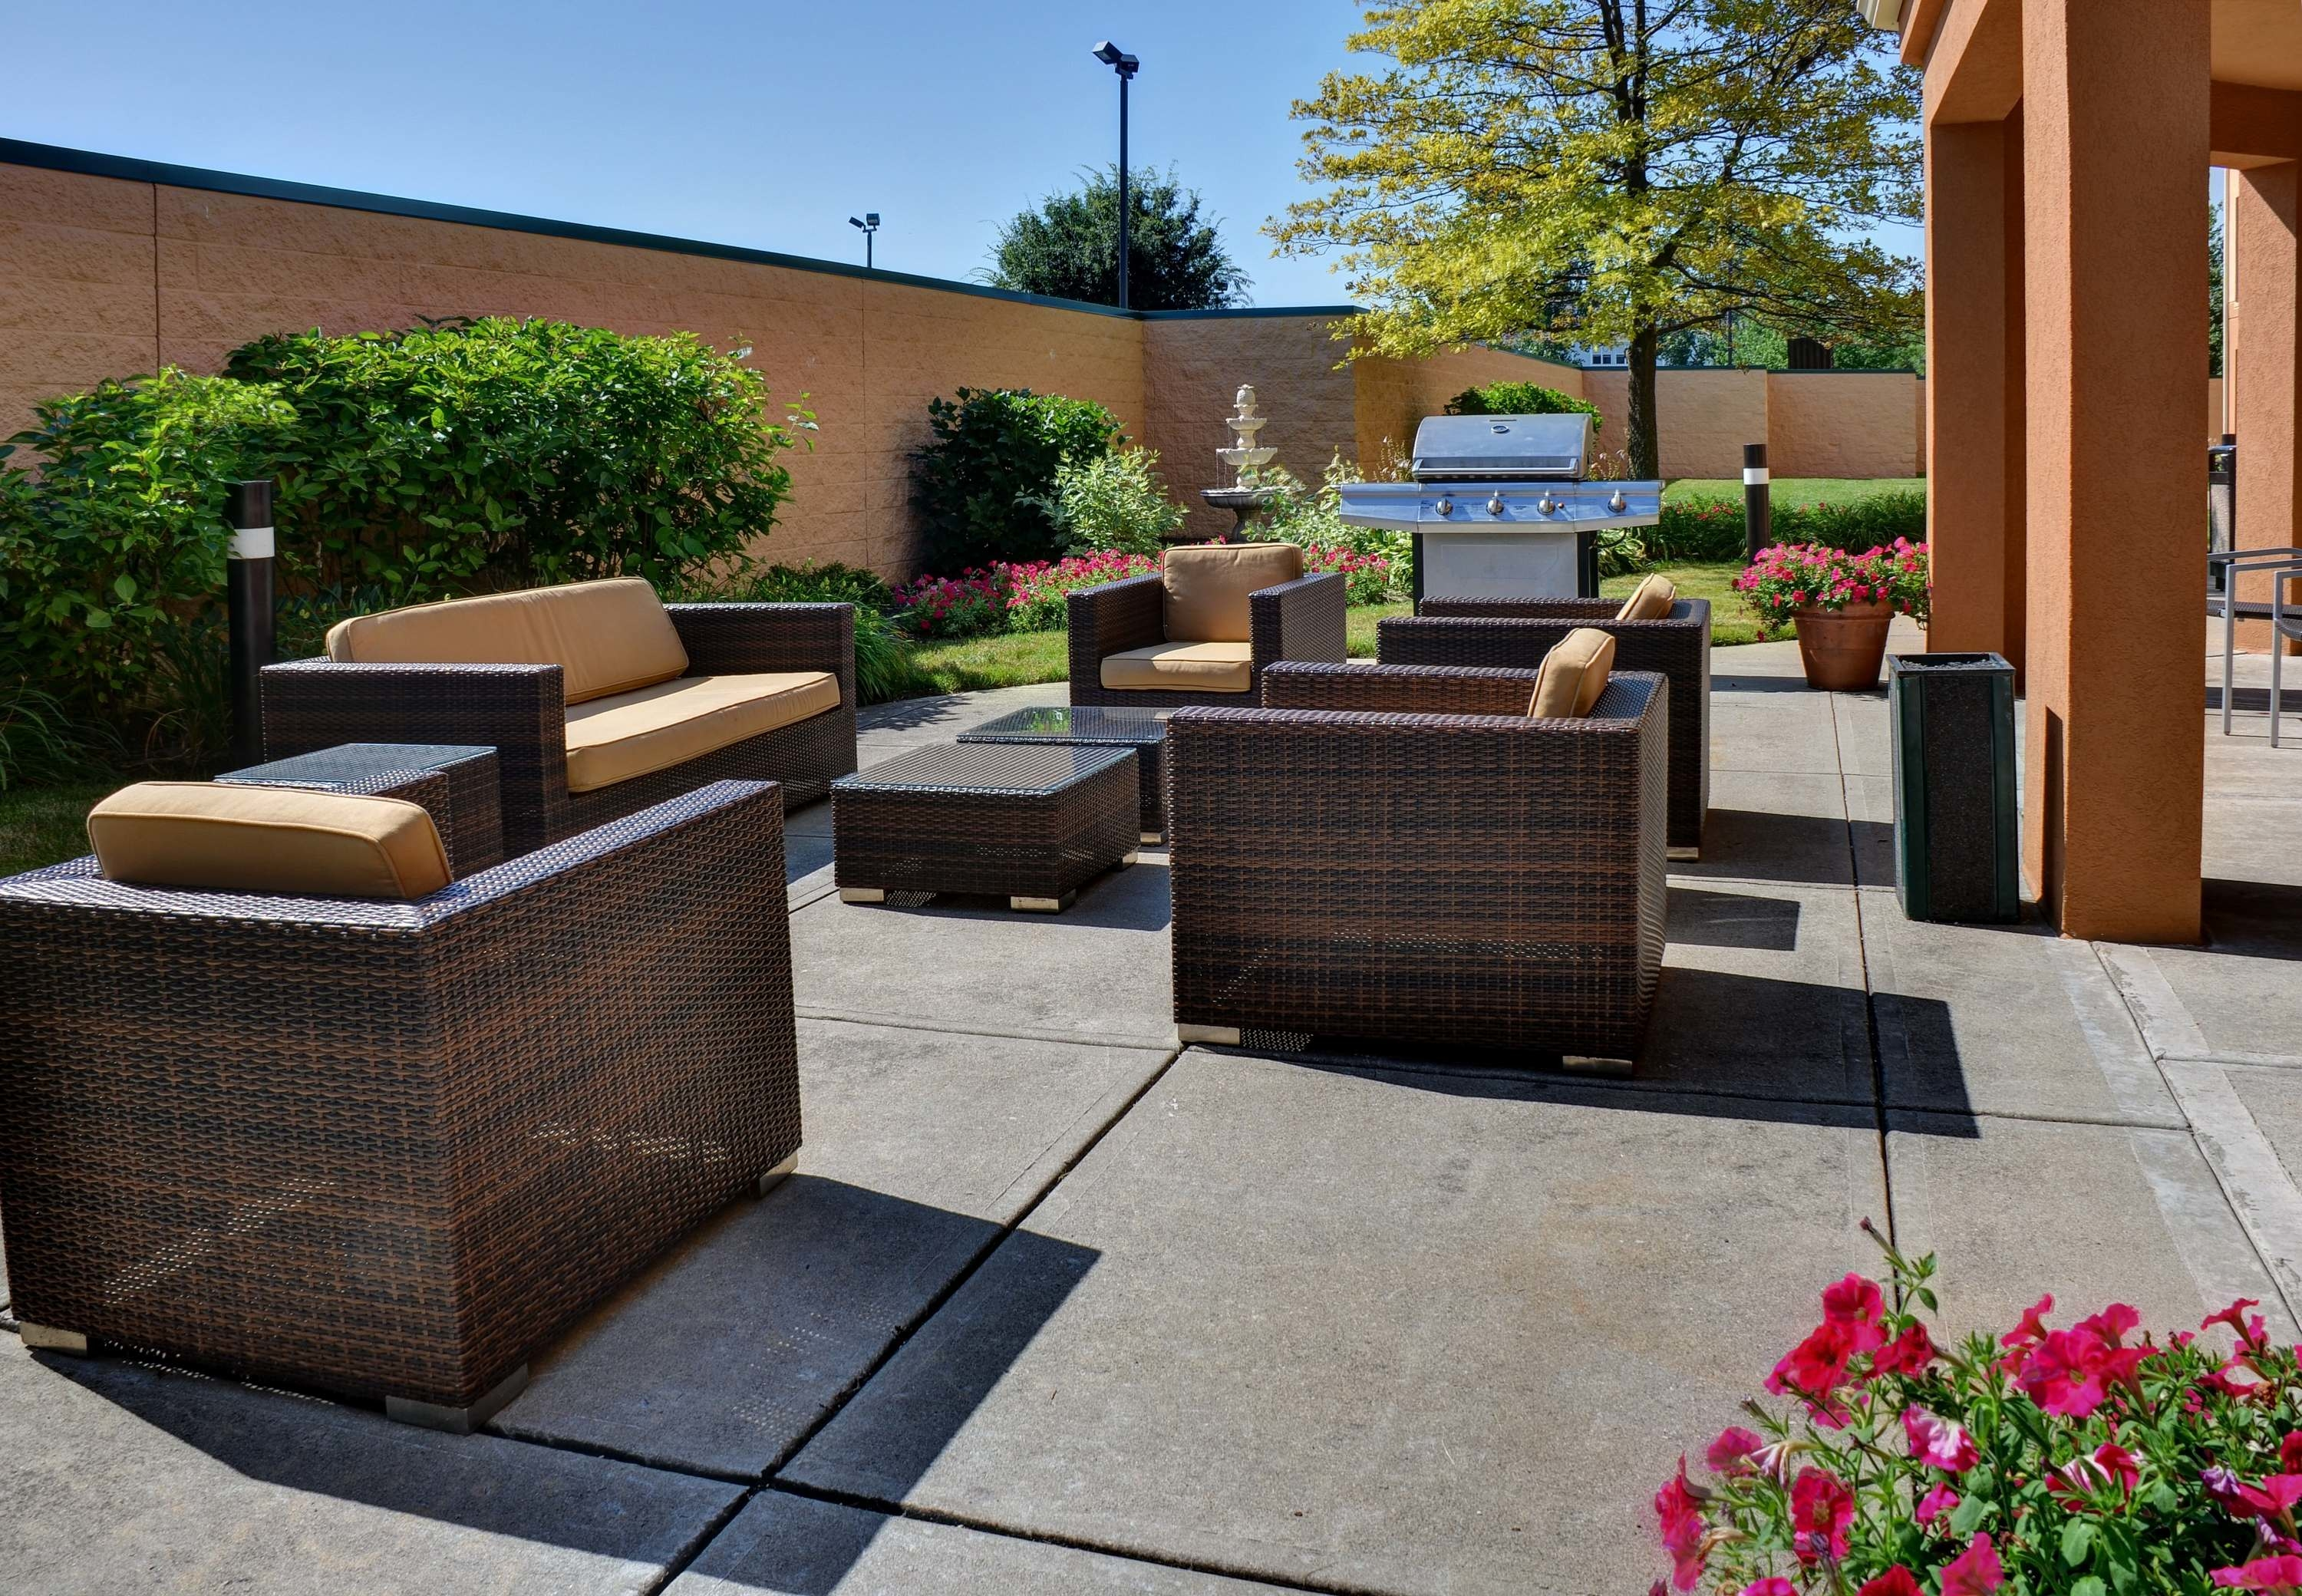 Courtyard by Marriott Indianapolis South image 15